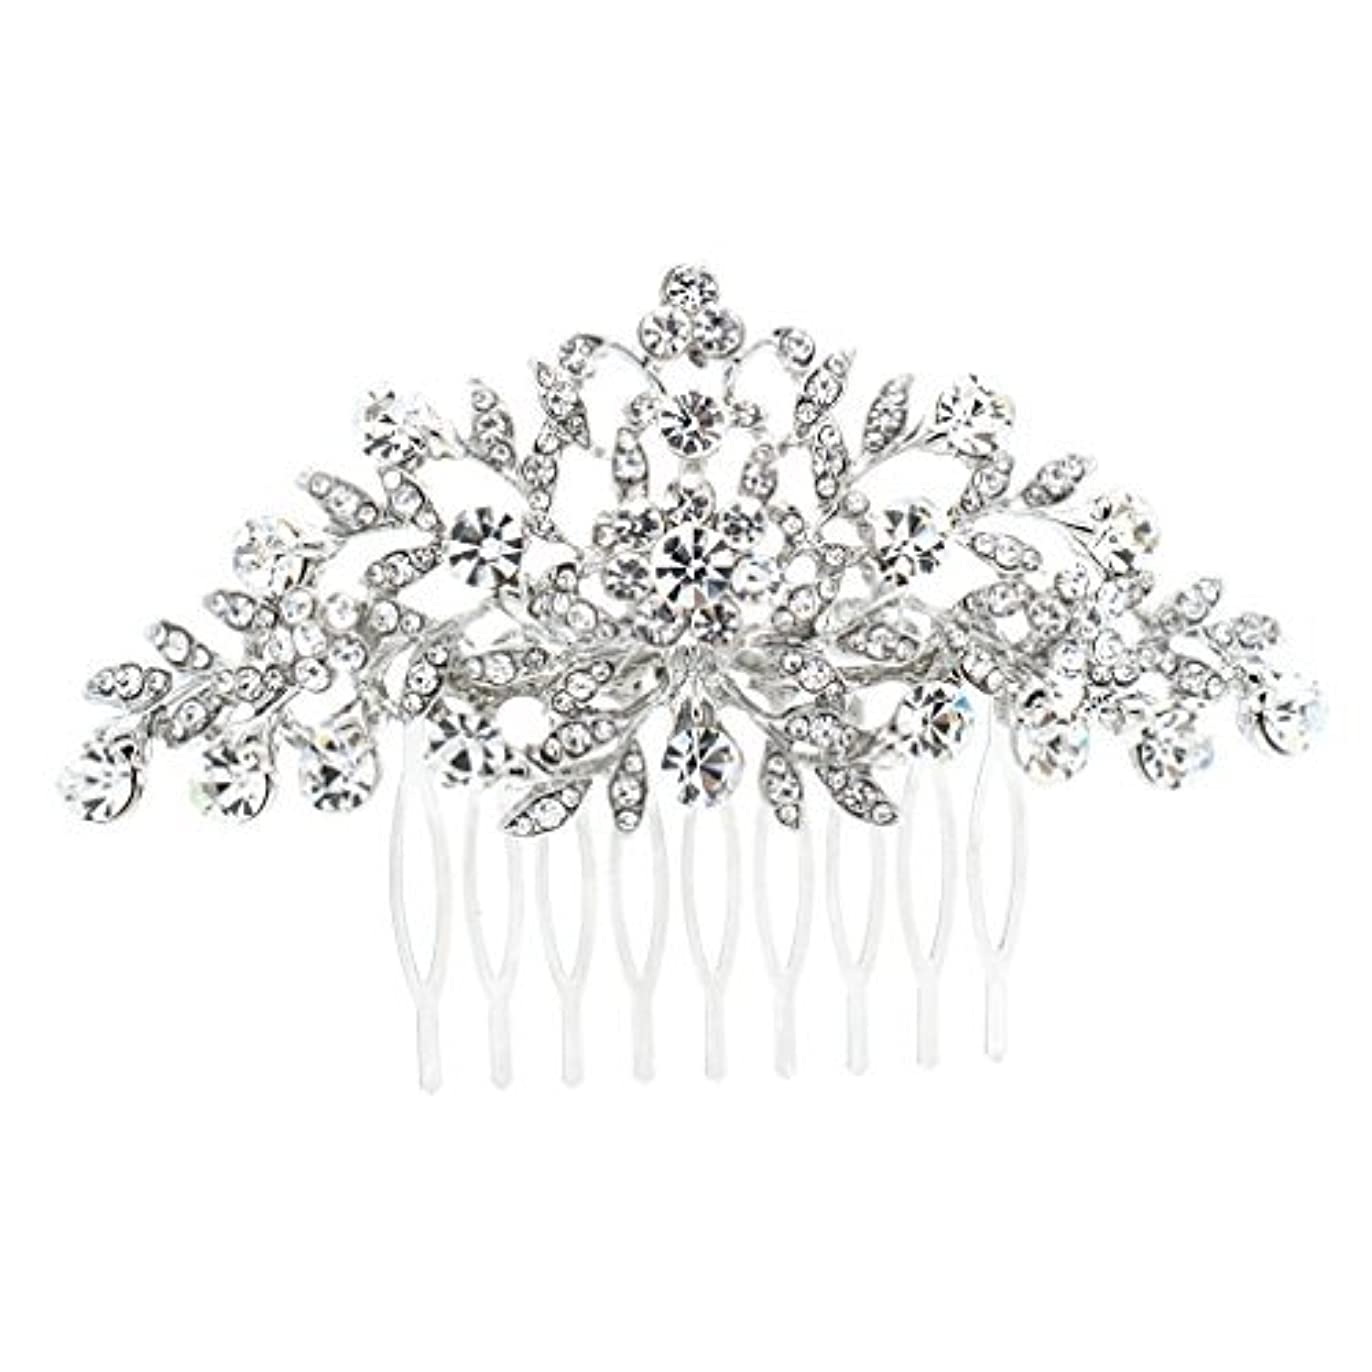 エコー端末思われるSEPBRDIALS Rhinestone Crystal Hair Comb Pins Women Wedding Hair Jewelry Accessories FA2944 (Silver) [並行輸入品]